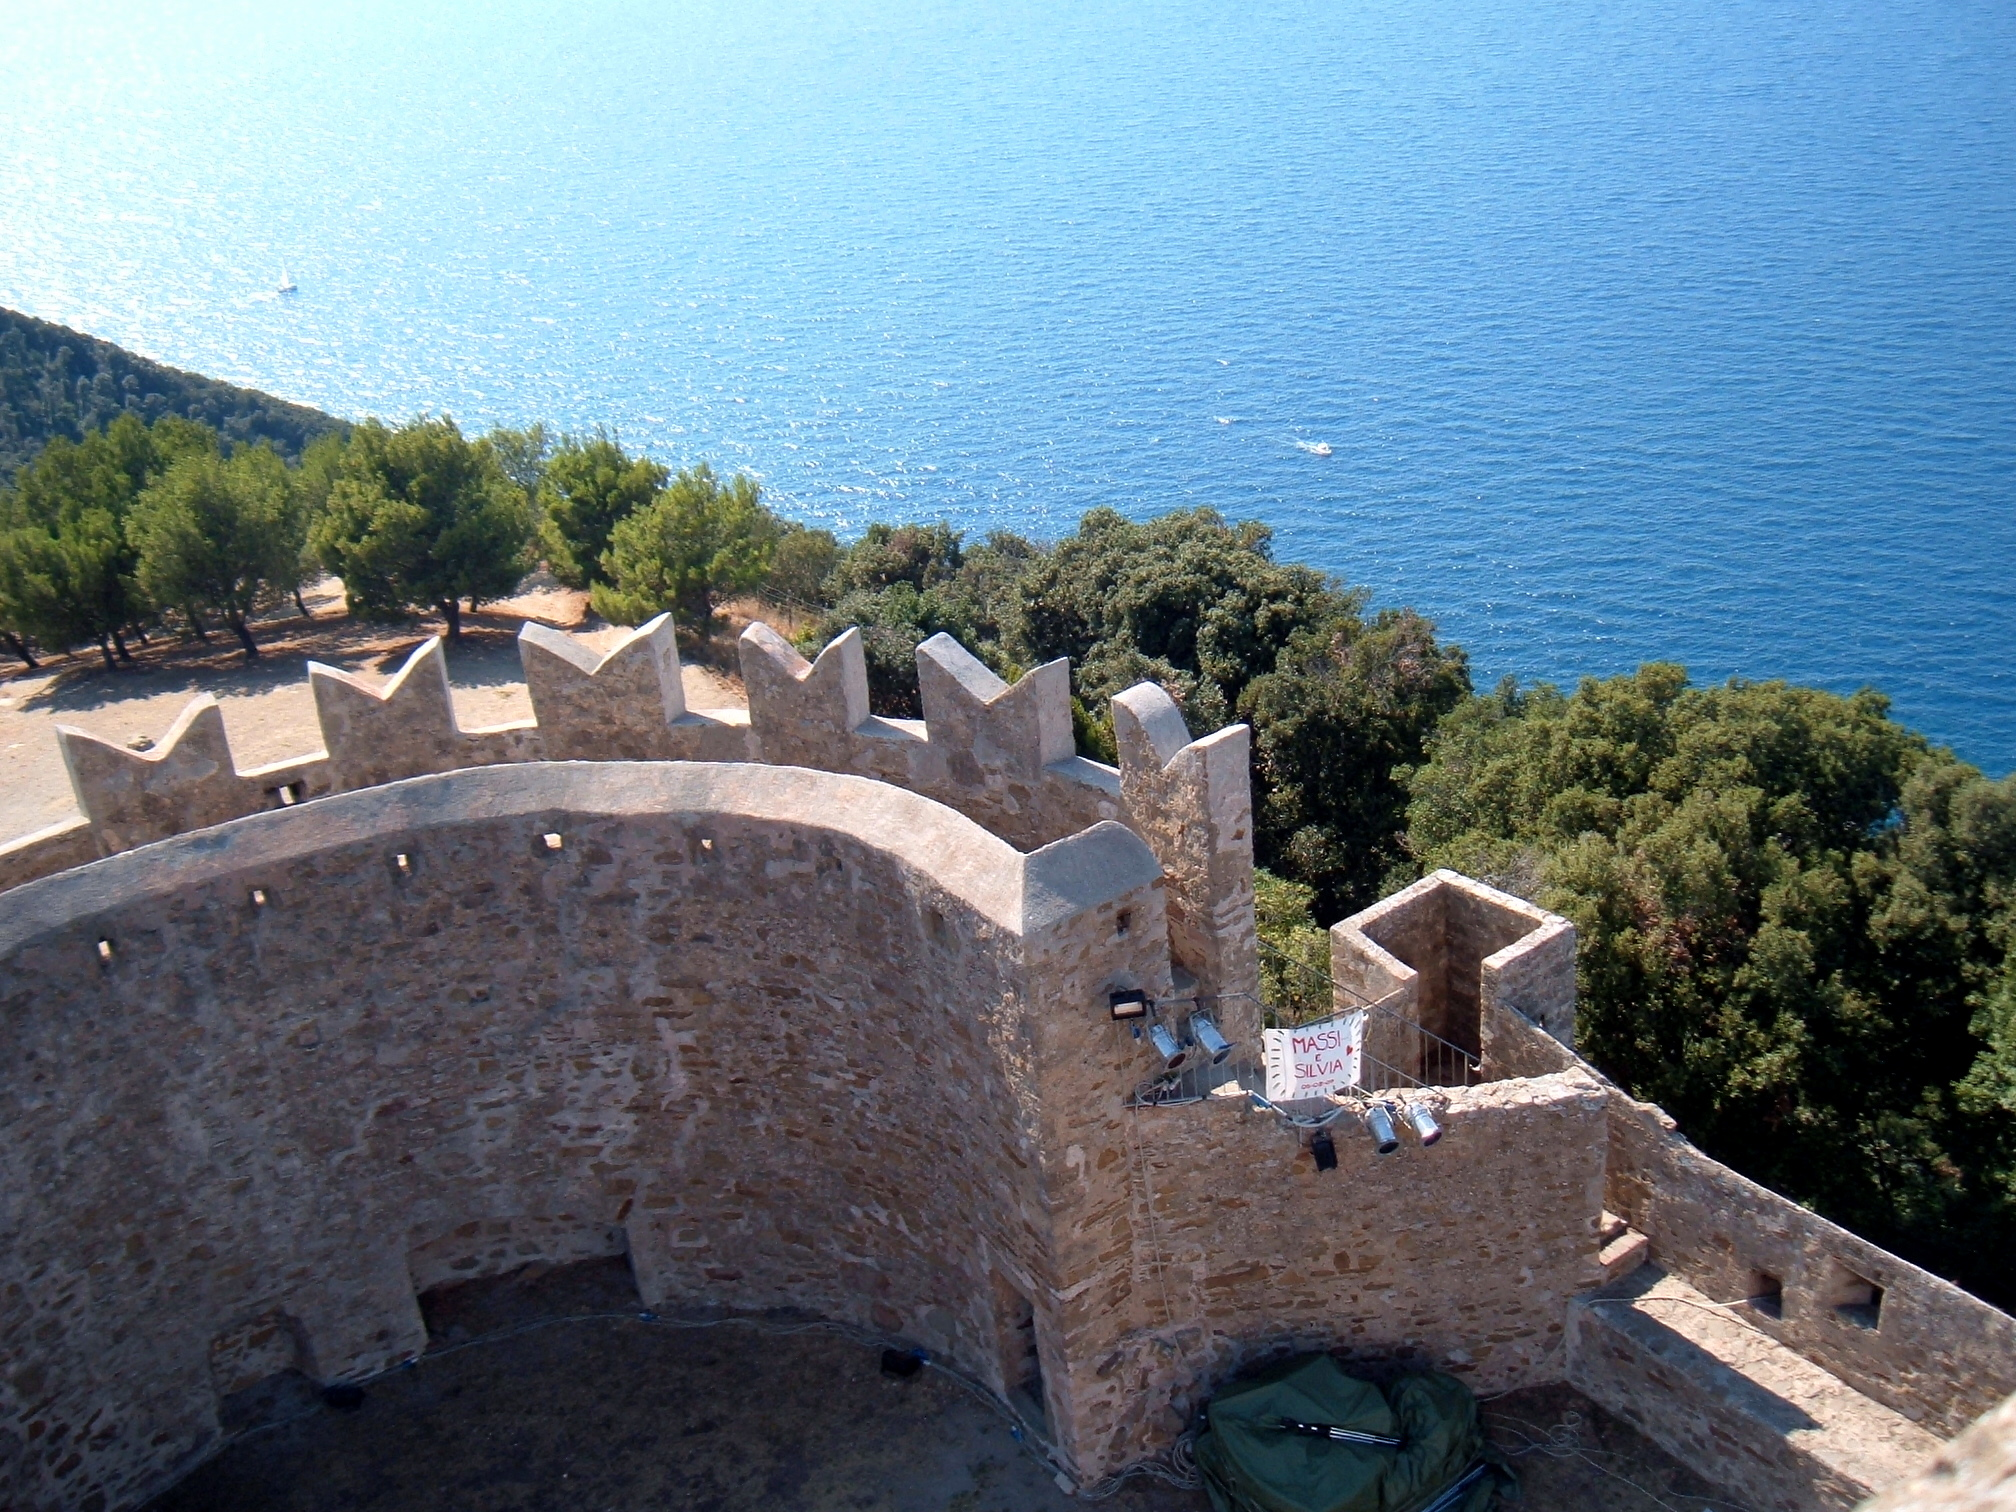 Castle_of_Populonia_-_From_the_tower